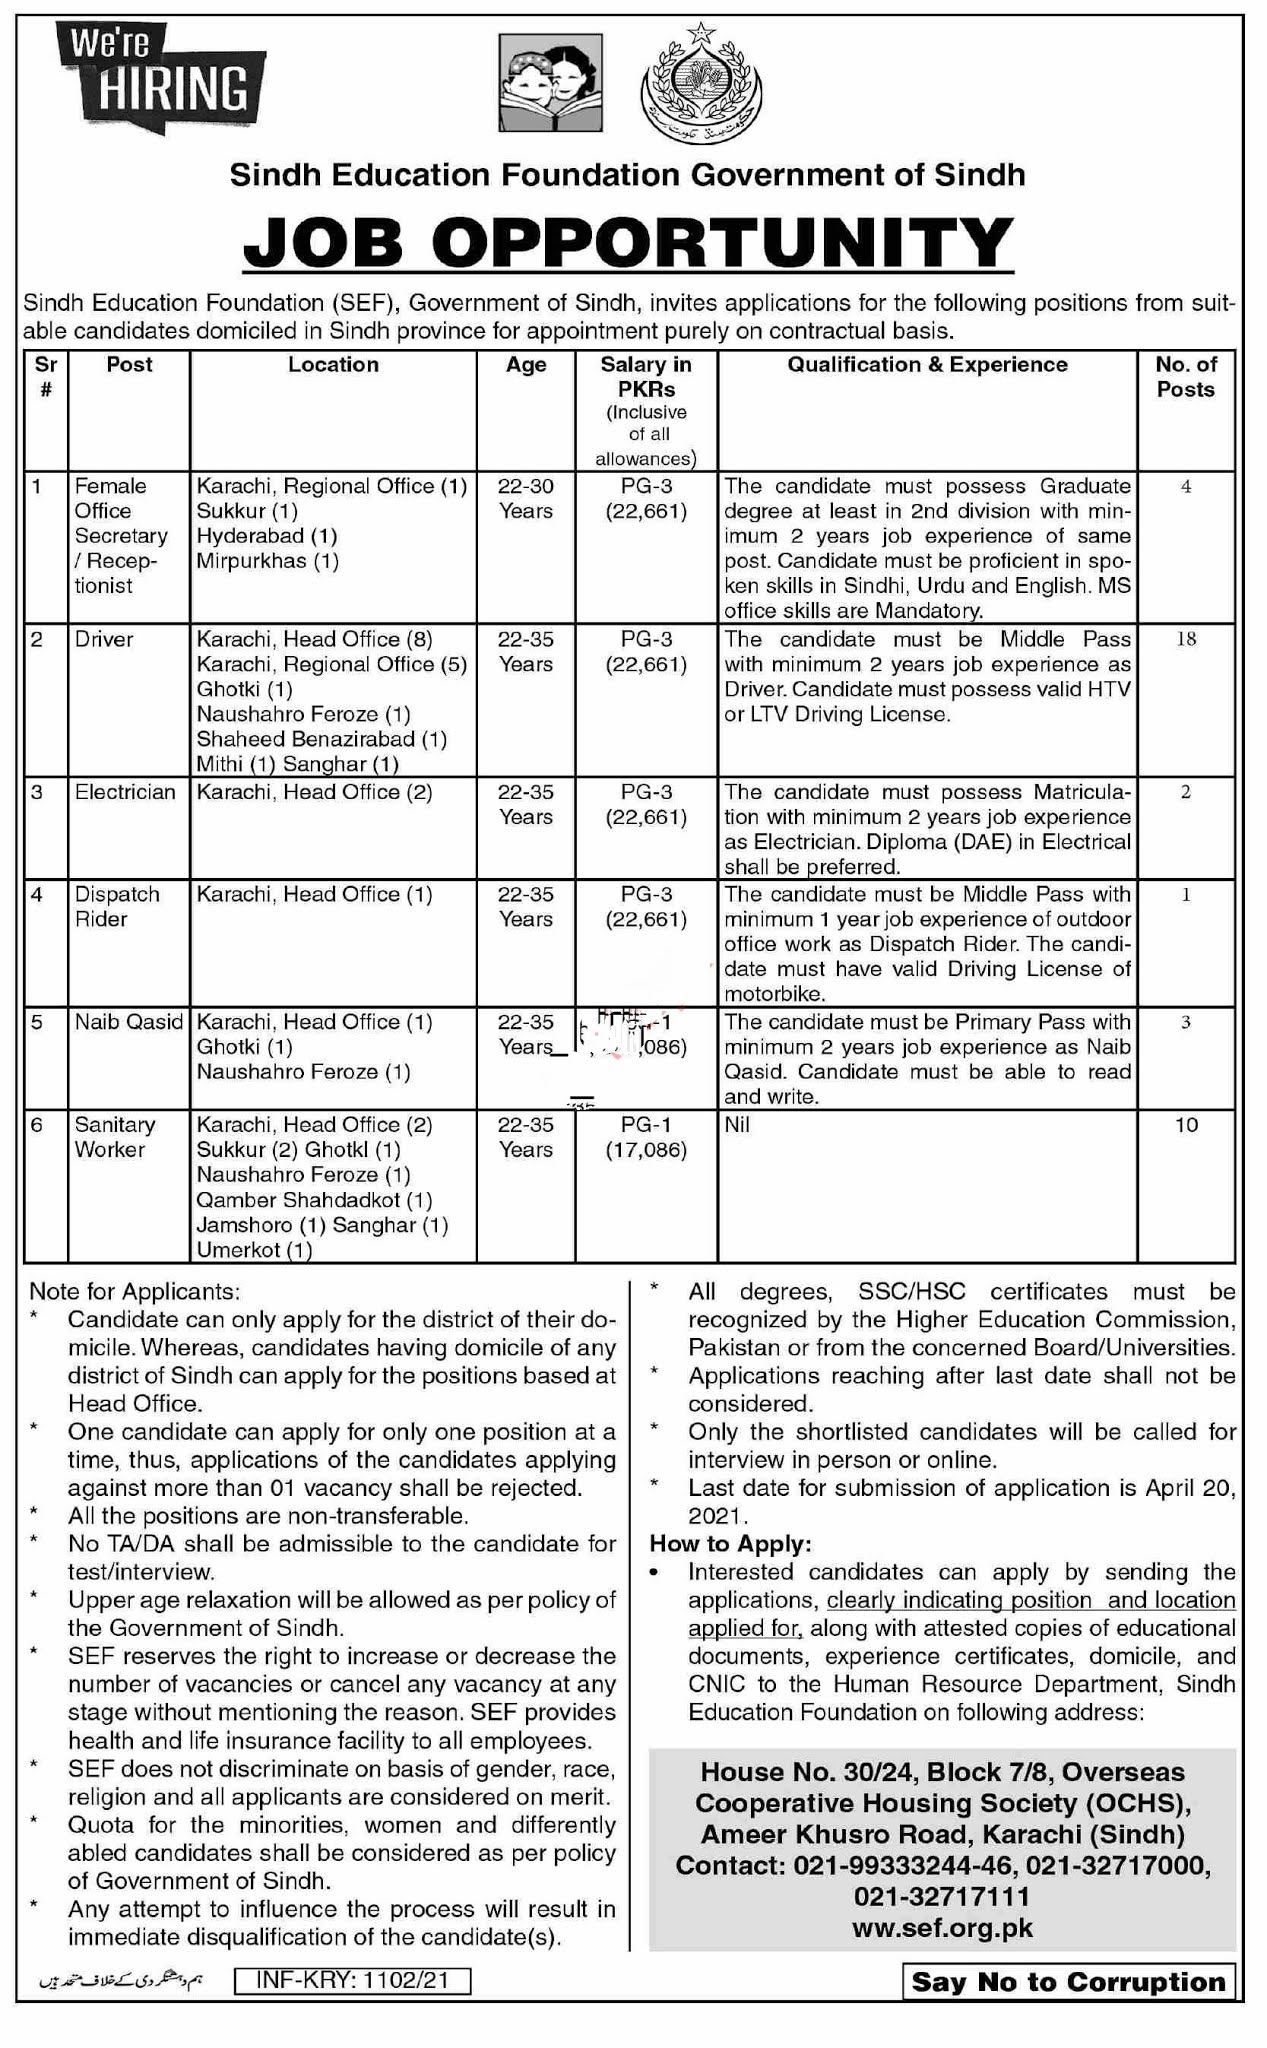 Sindh Education Foundation SEF Jobs 2021 For Office Secretary, Receptionist, Female Receptionist, Driver & more